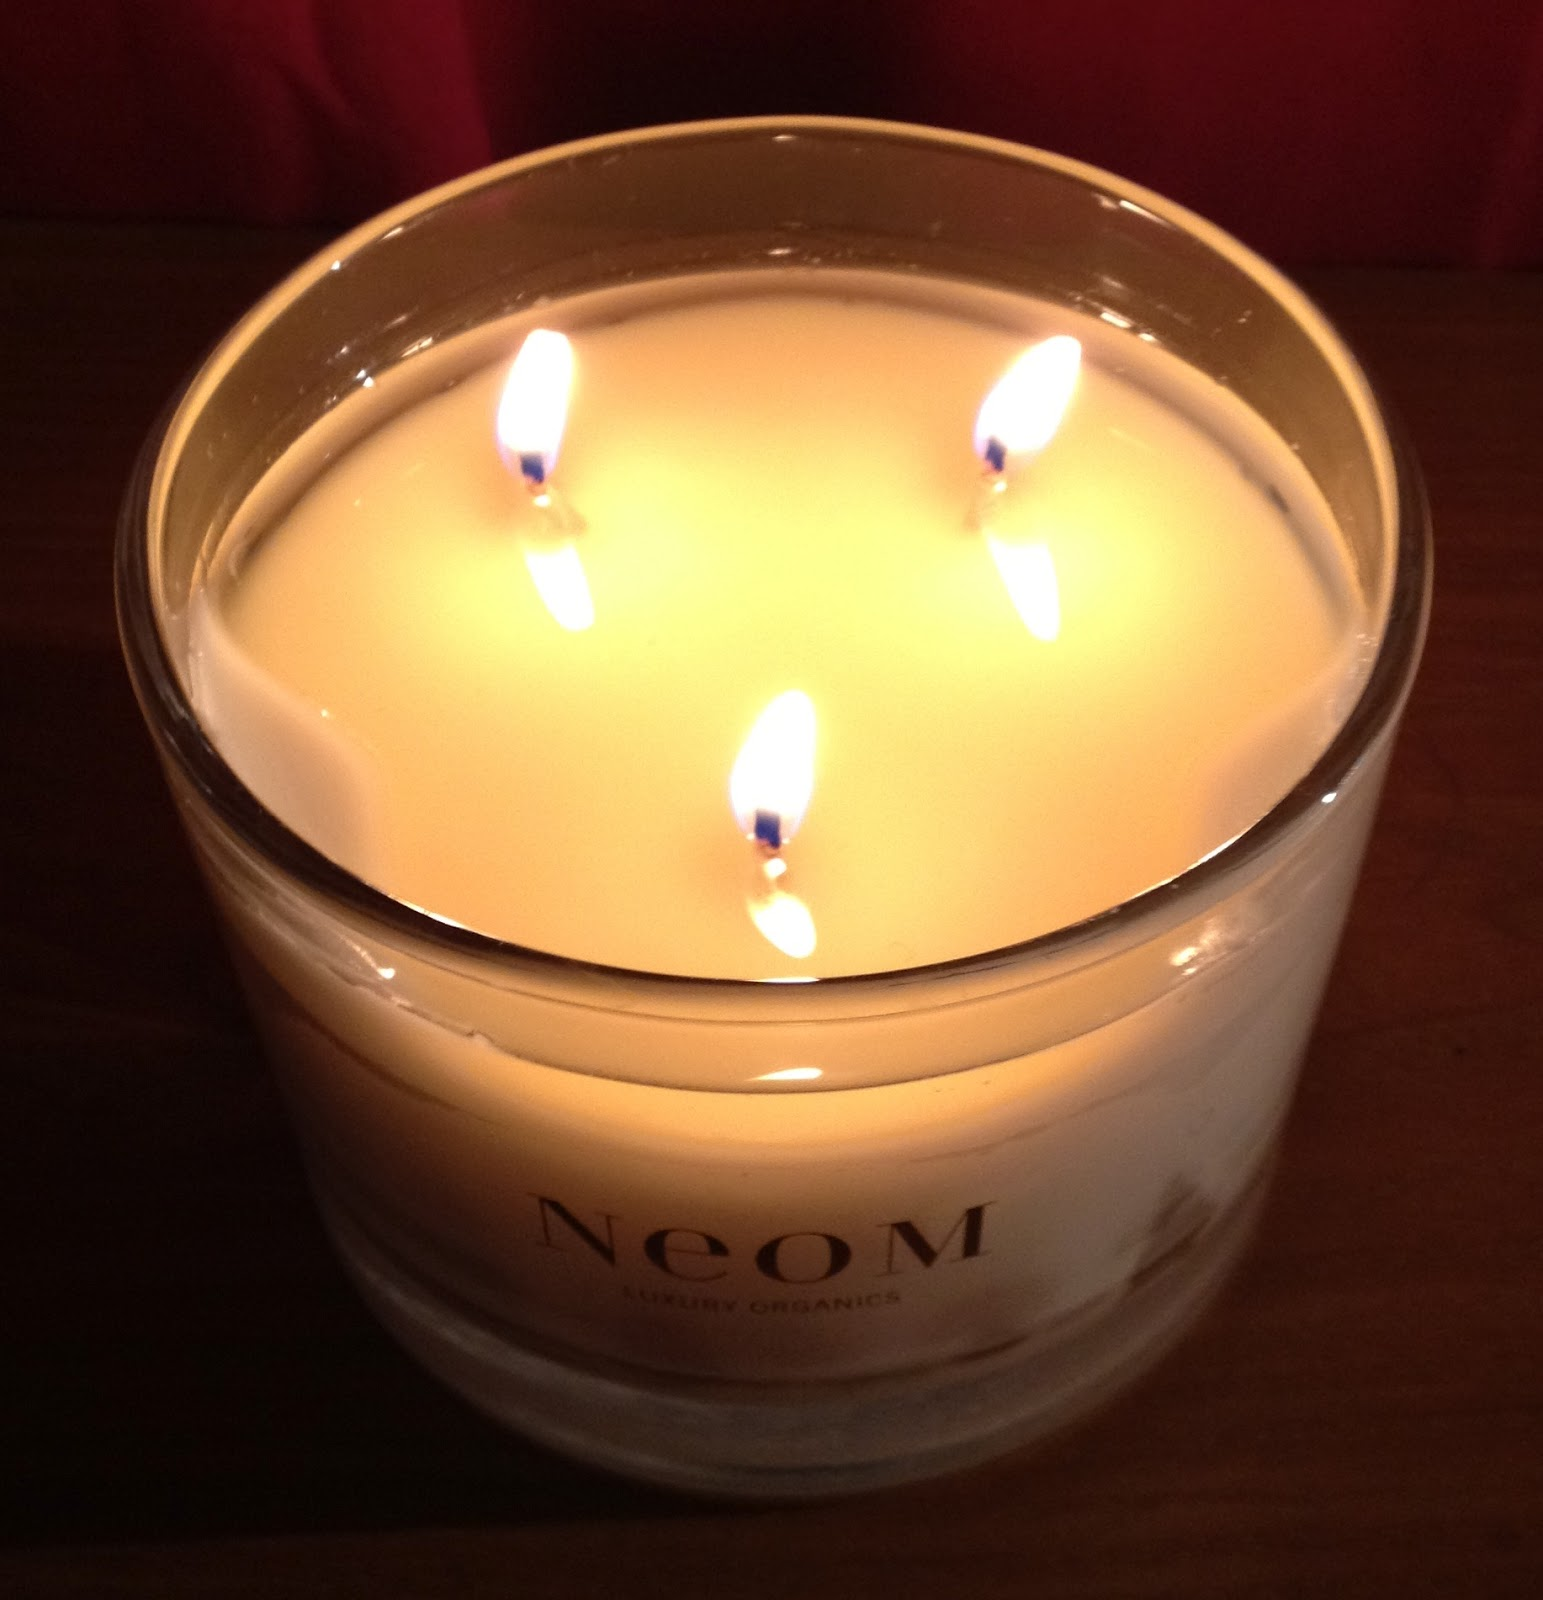 Neom Tranquility 3 Wick Candle - Beauty Geek UK